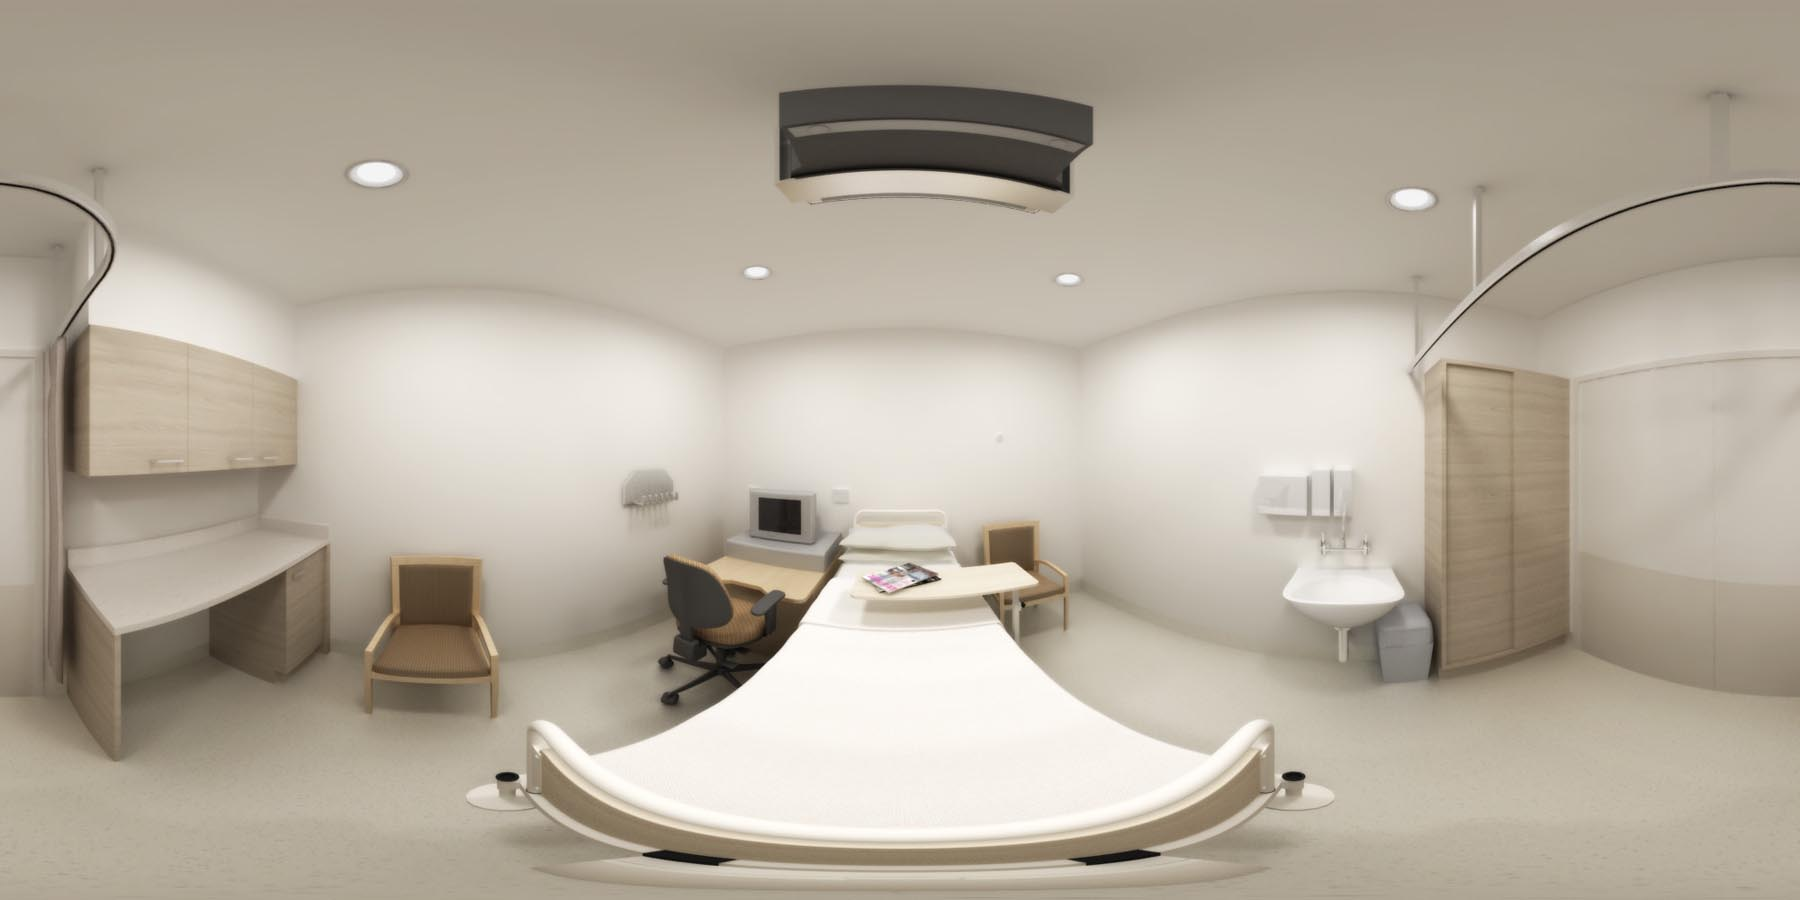 360 VR_bedroom health care hospital